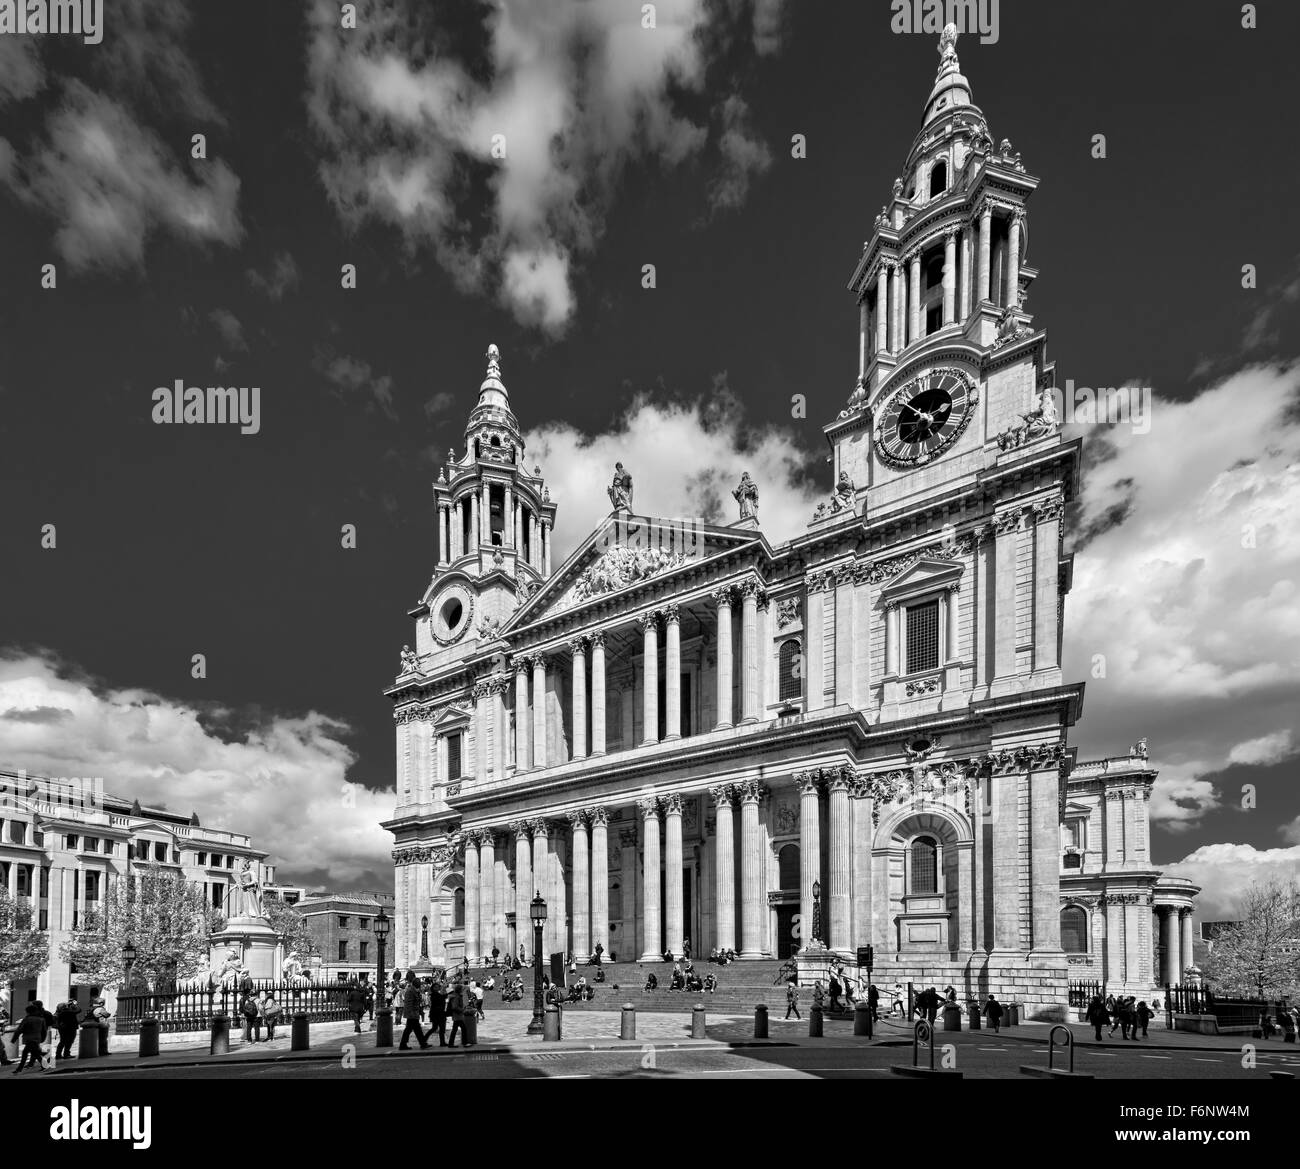 St Paul's Cathedral in London designed by Sir Christopher Wren Stock Photo